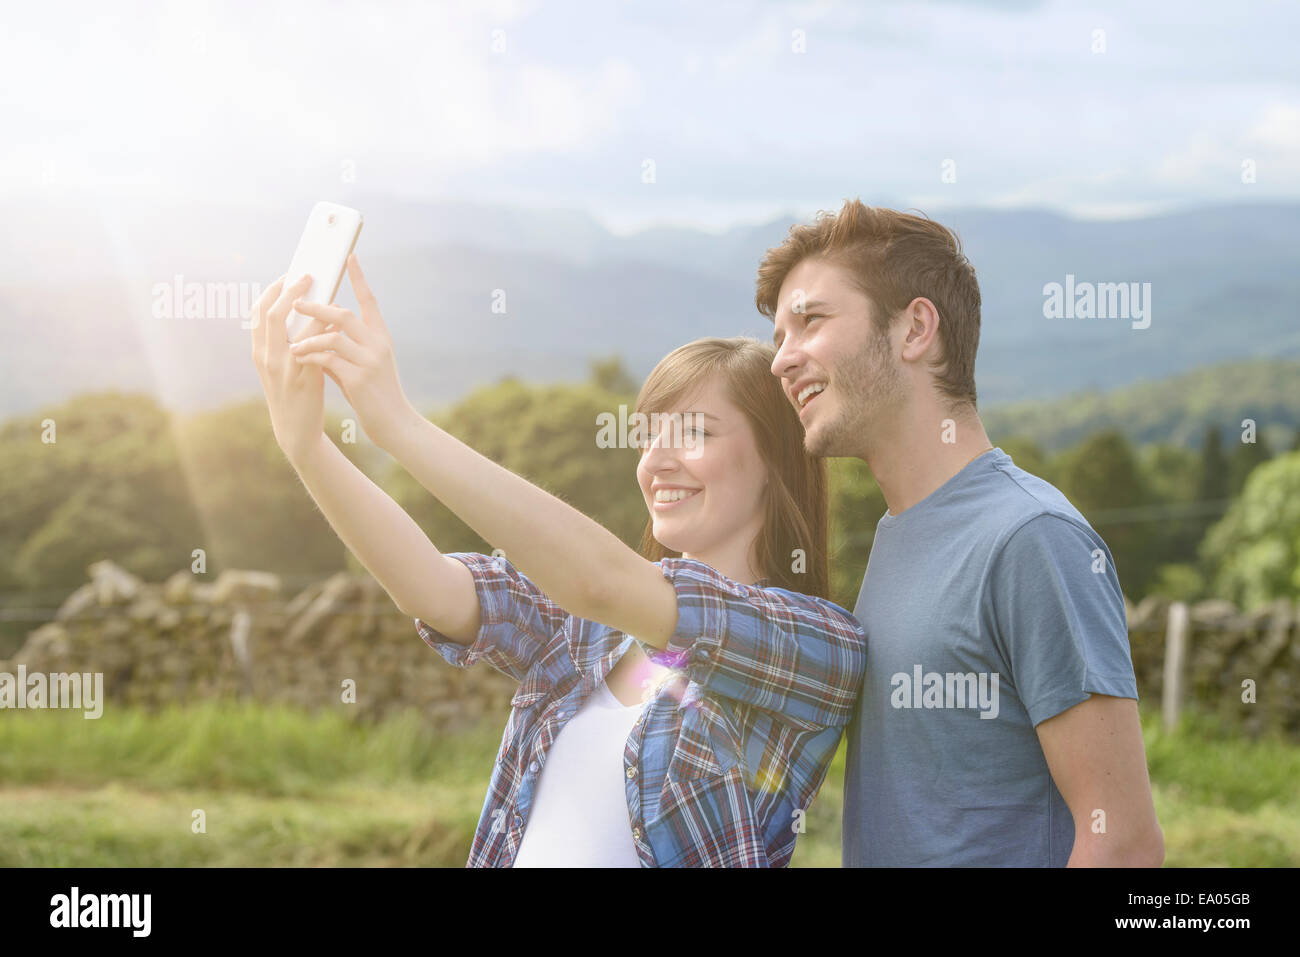 Young couple taking self portrait on mobile phone in countryside under sunny sky - Stock Image